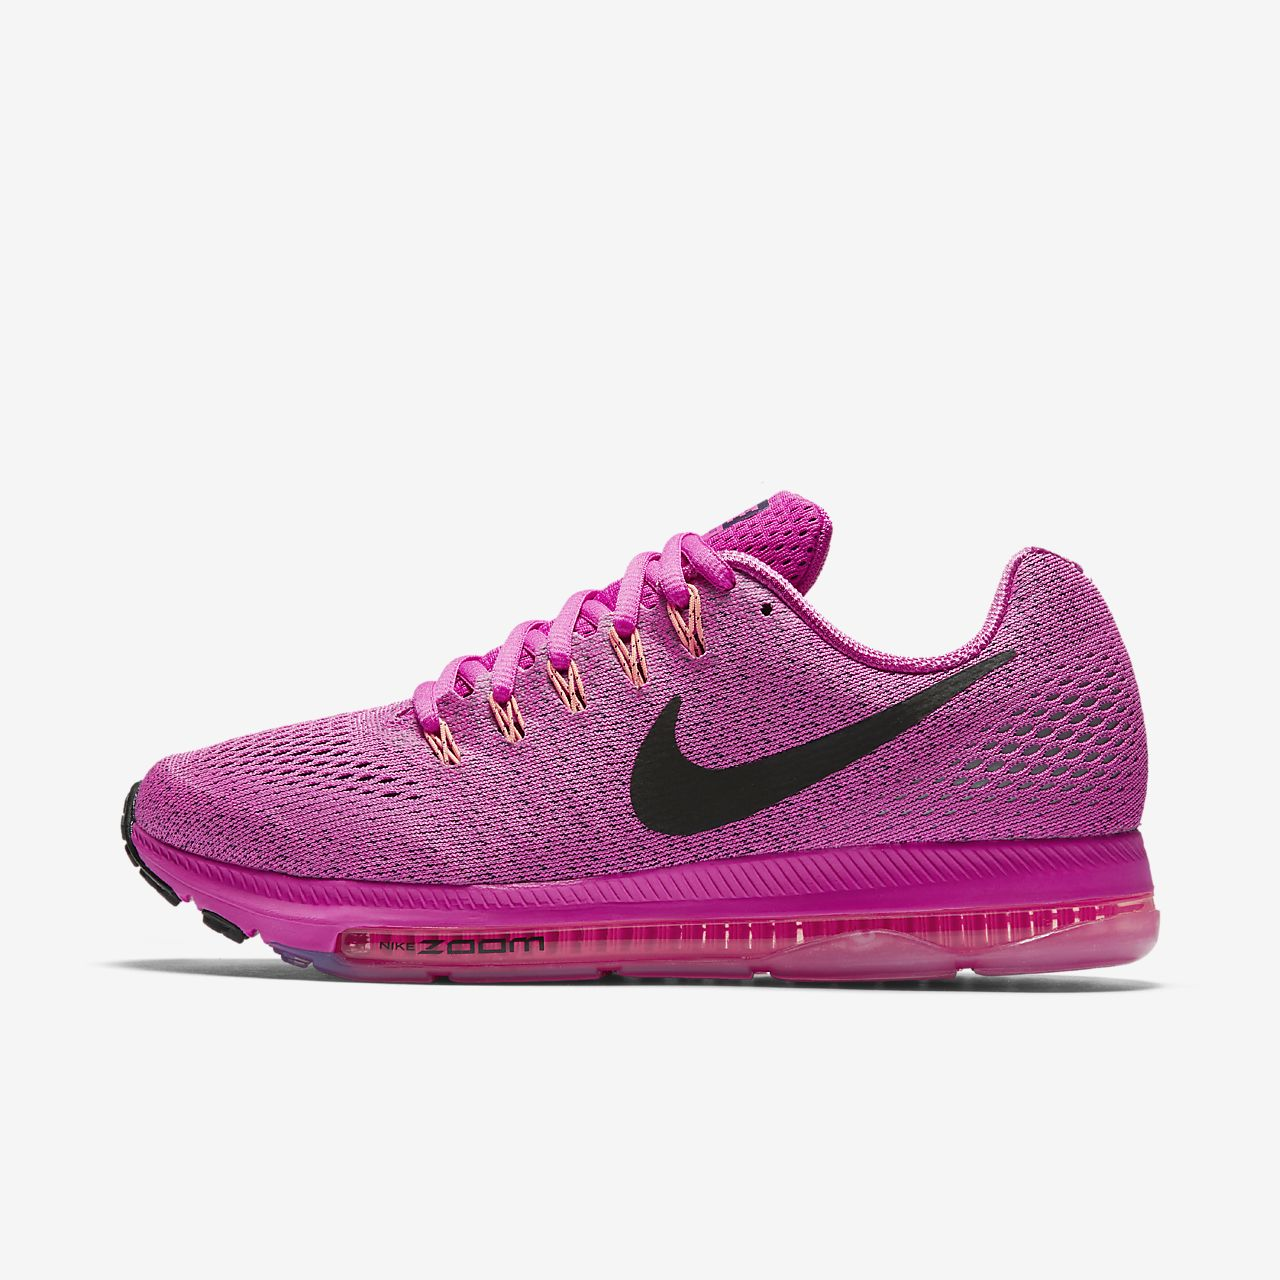 Nike Zoom All Out Low Damen-Laufschuh - Pink R4shv7d